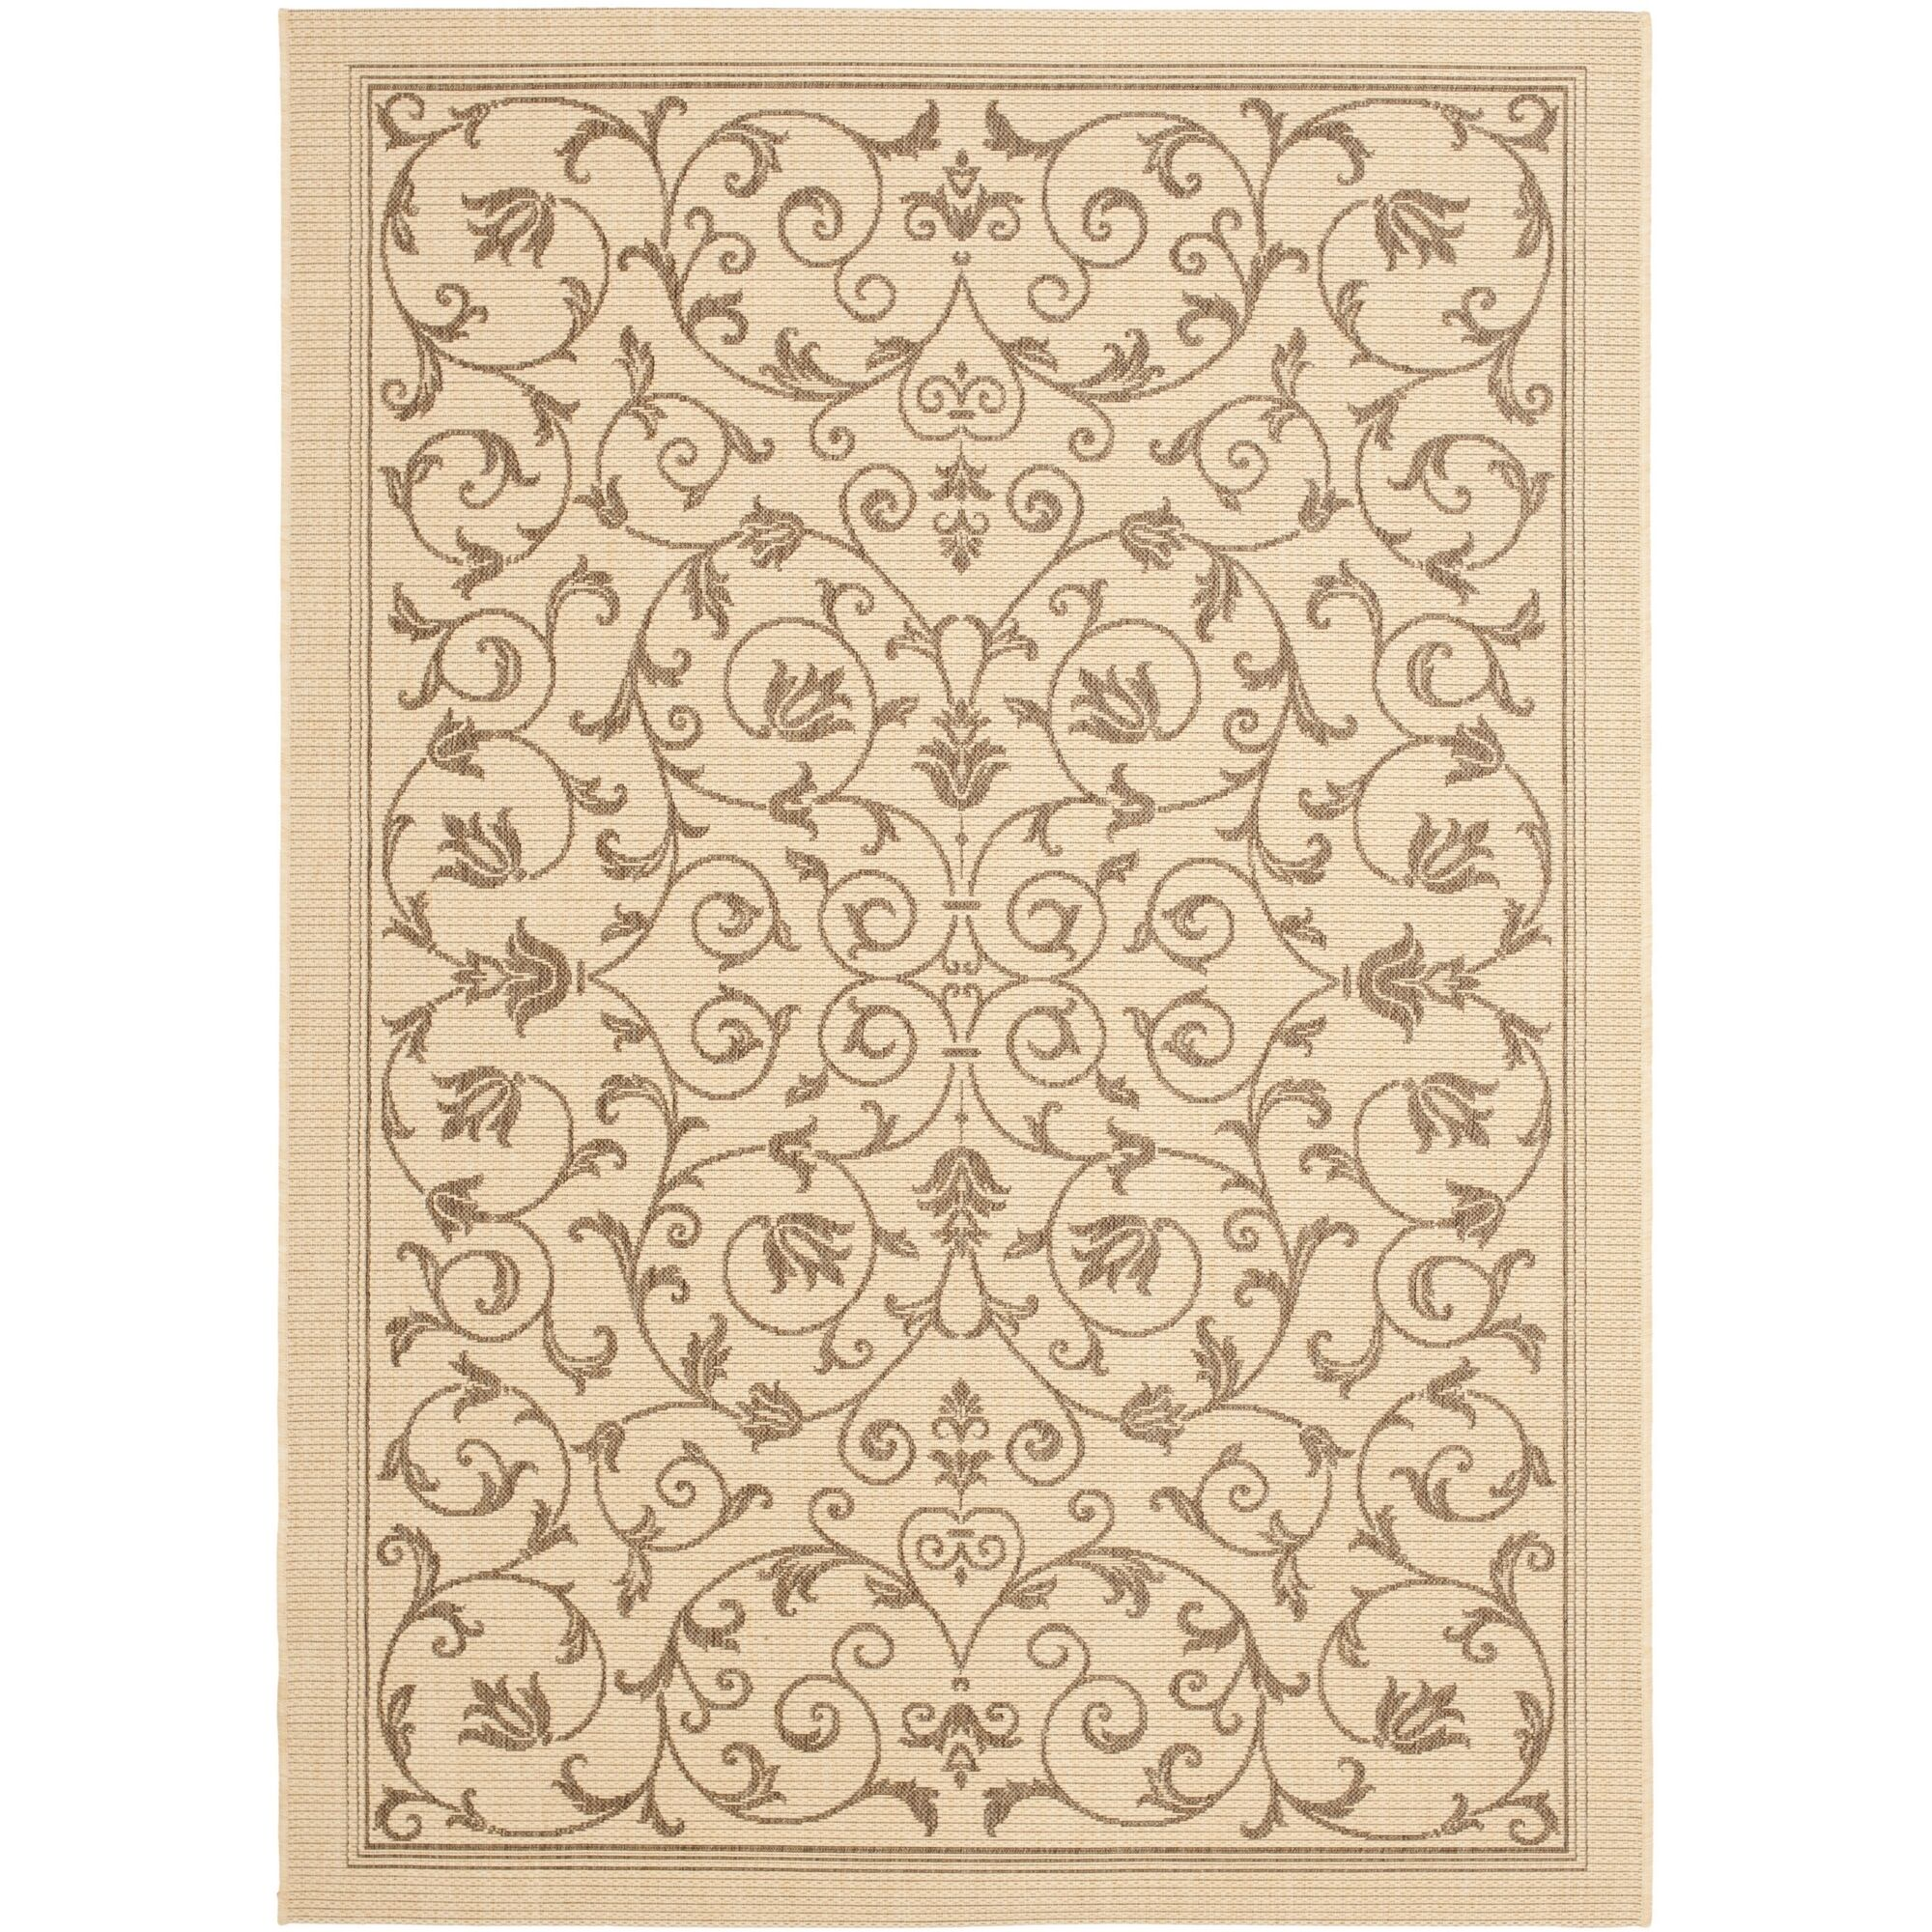 Bexton Beige/Brown Outdoor/Indoor Area Rug Rug Size: Rectangle 5'3